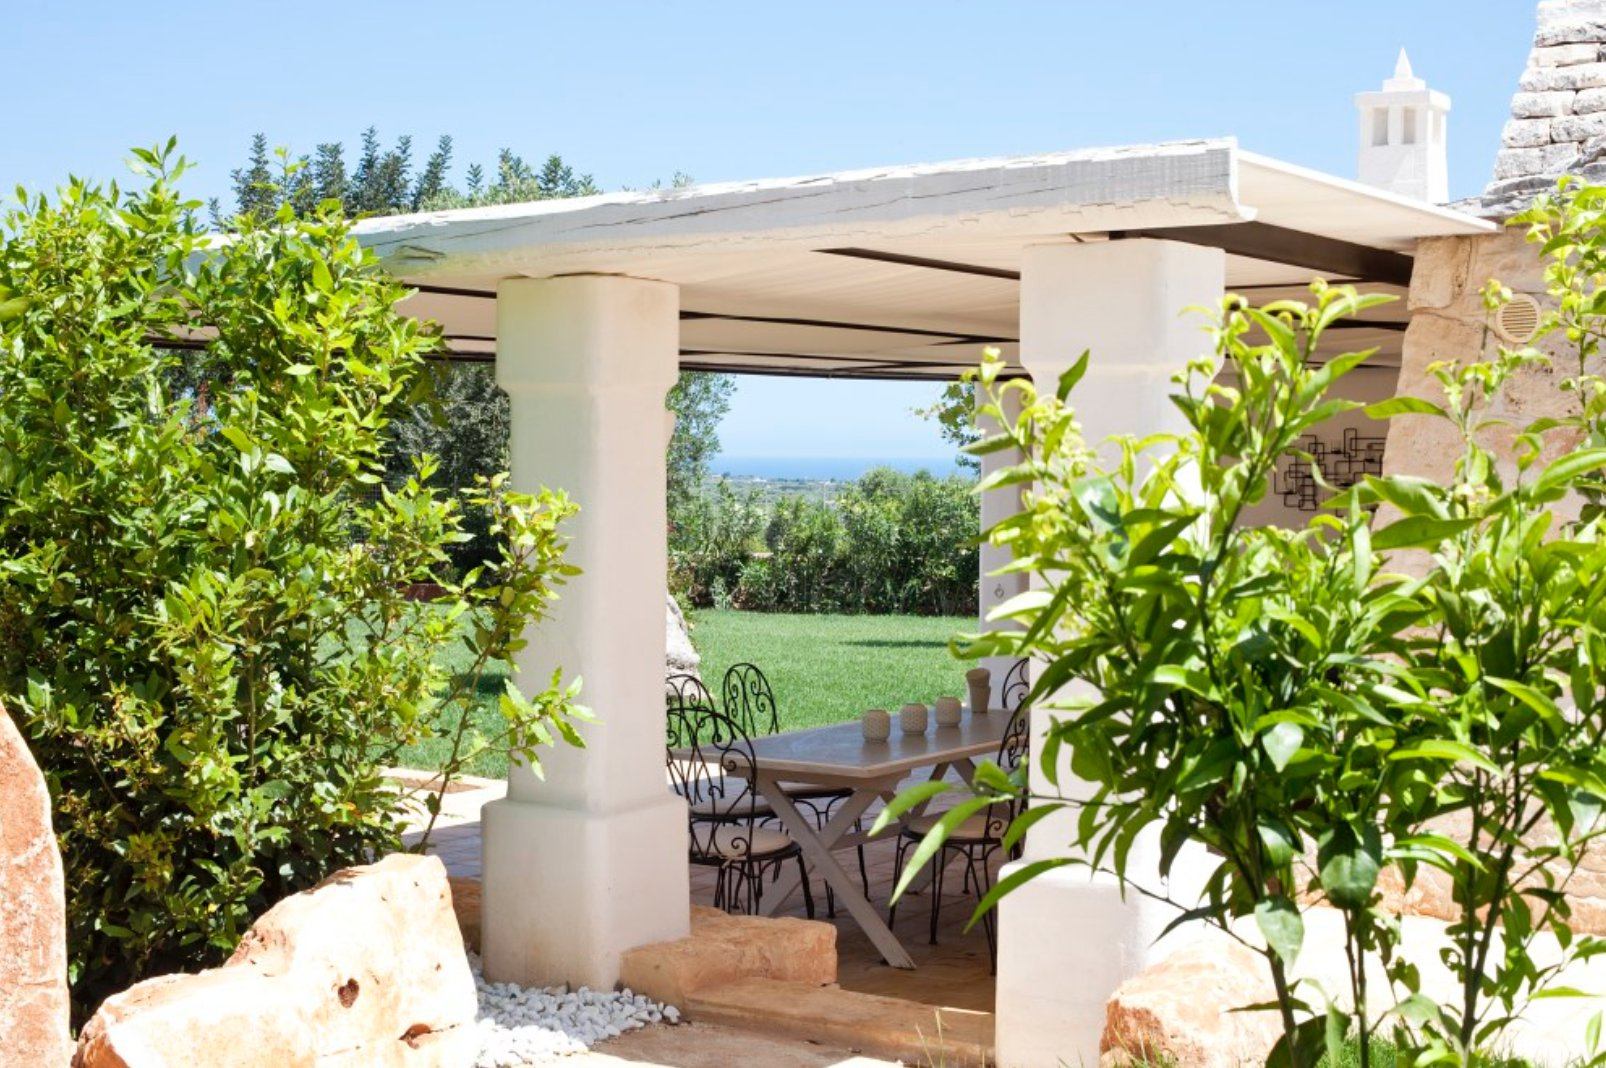 Rental Villa Trullo Alice - Les Pouilles, near the sea